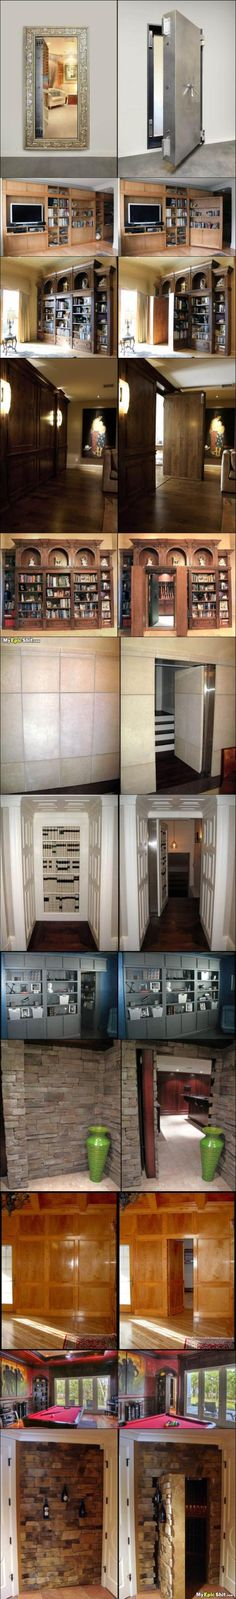 Secret passage-I want one